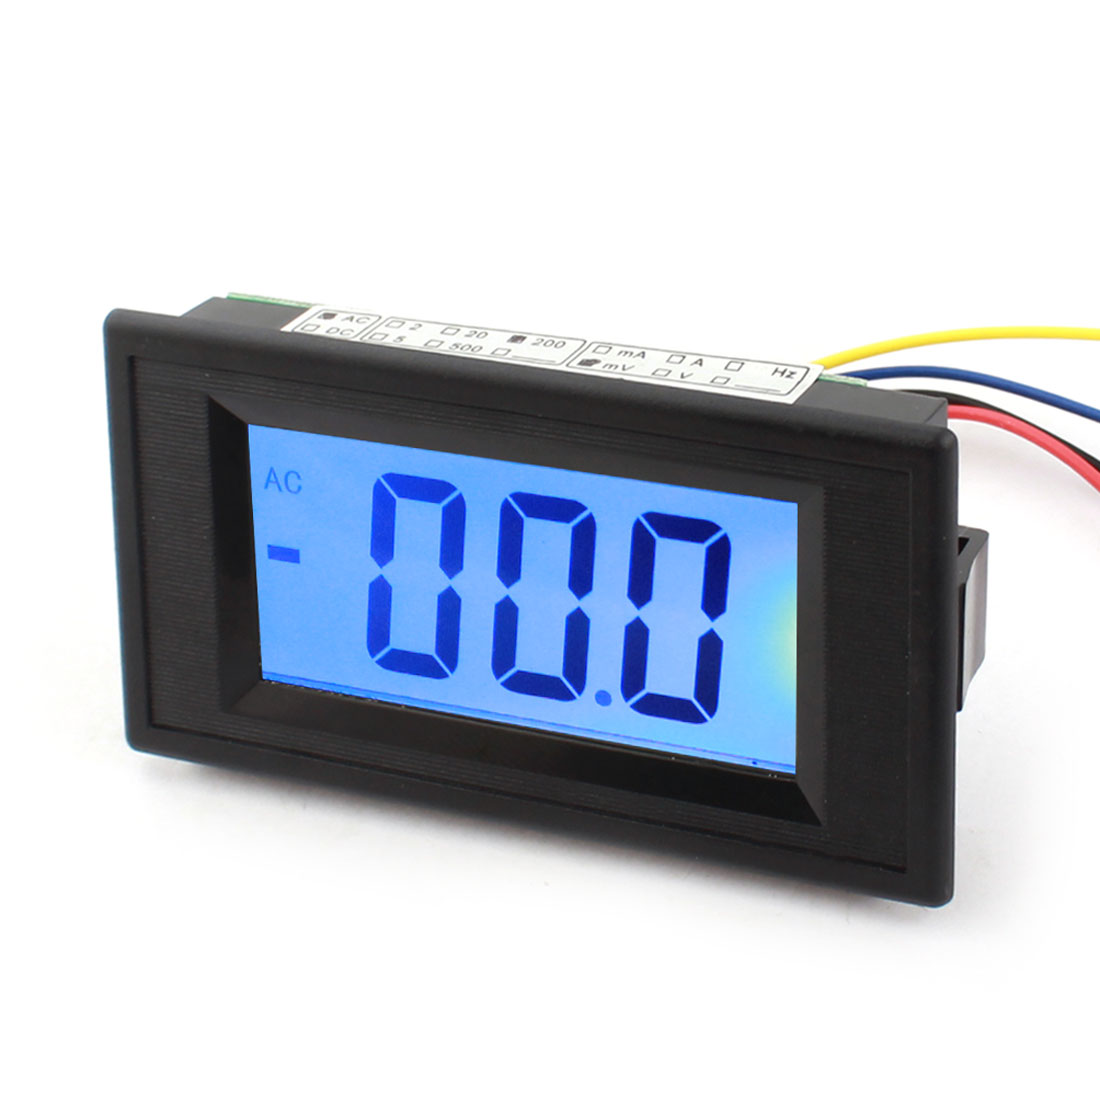 Blue LCD Panel Mount Meter Digital Voltmeter Display AC 0-200mV